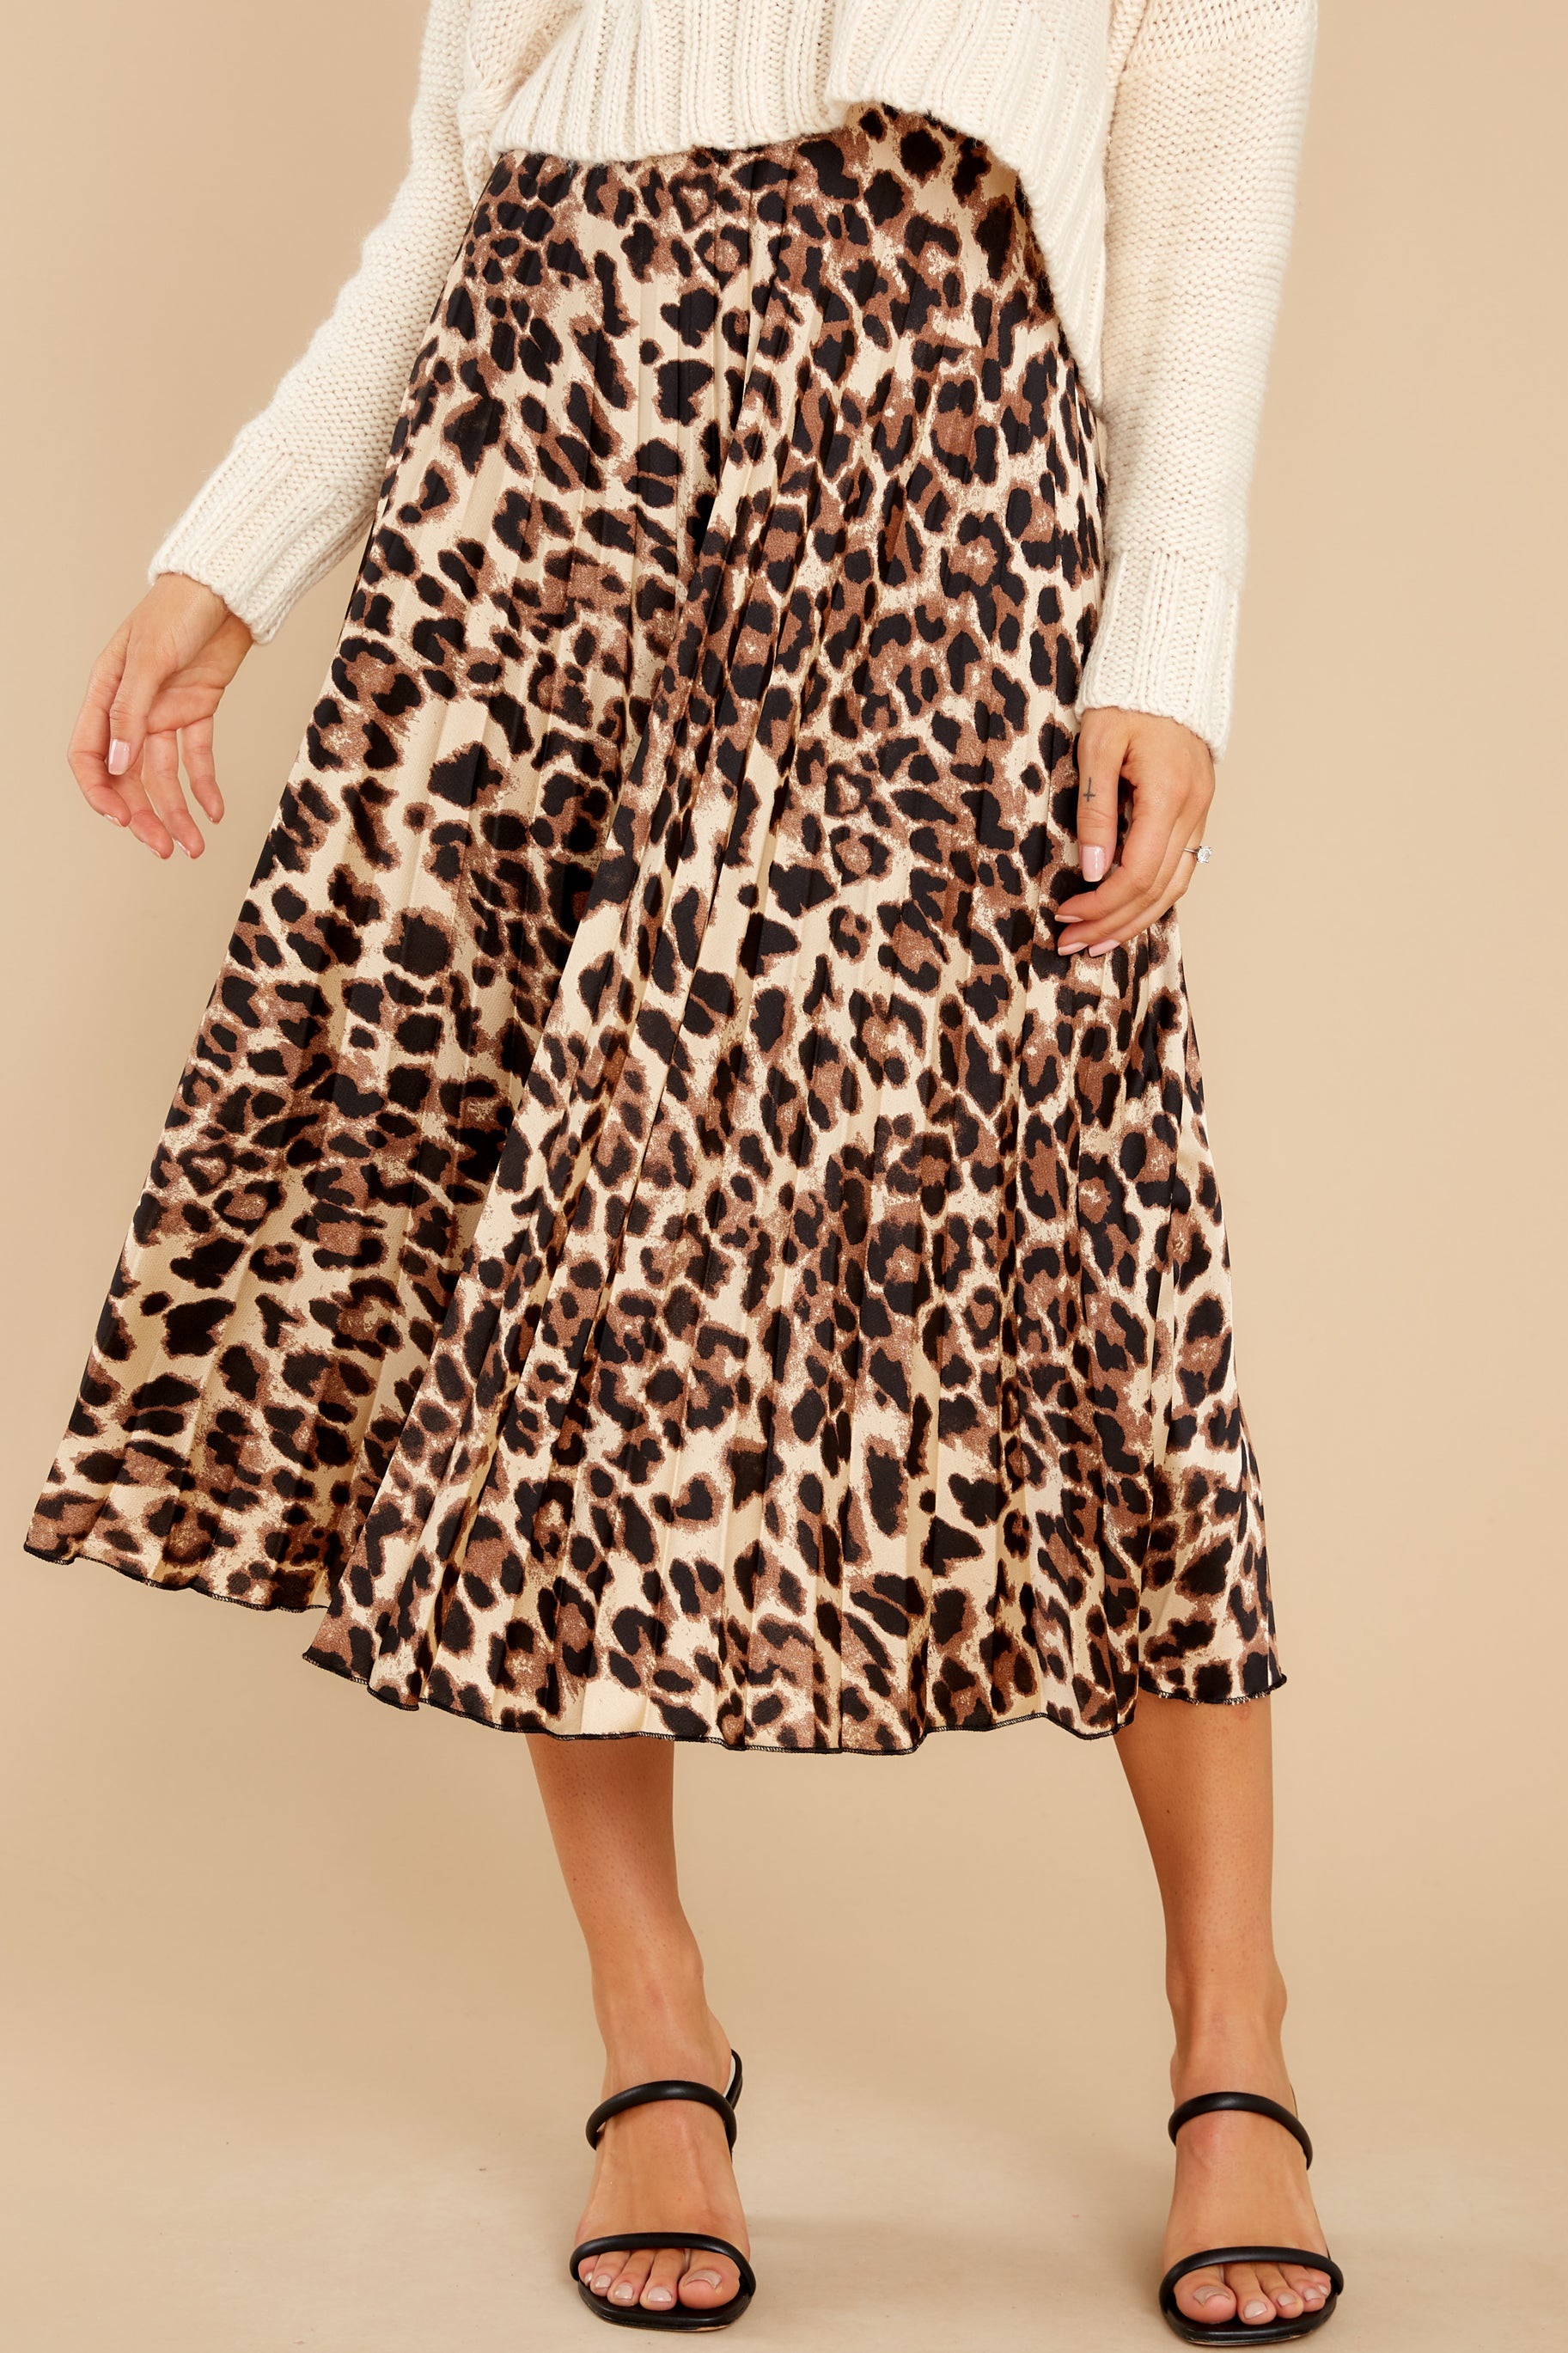 70s Clothes | Hippie Clothes & Outfits Act Wildly Leopard Print Midi Skirt Brown $19.00 AT vintagedancer.com